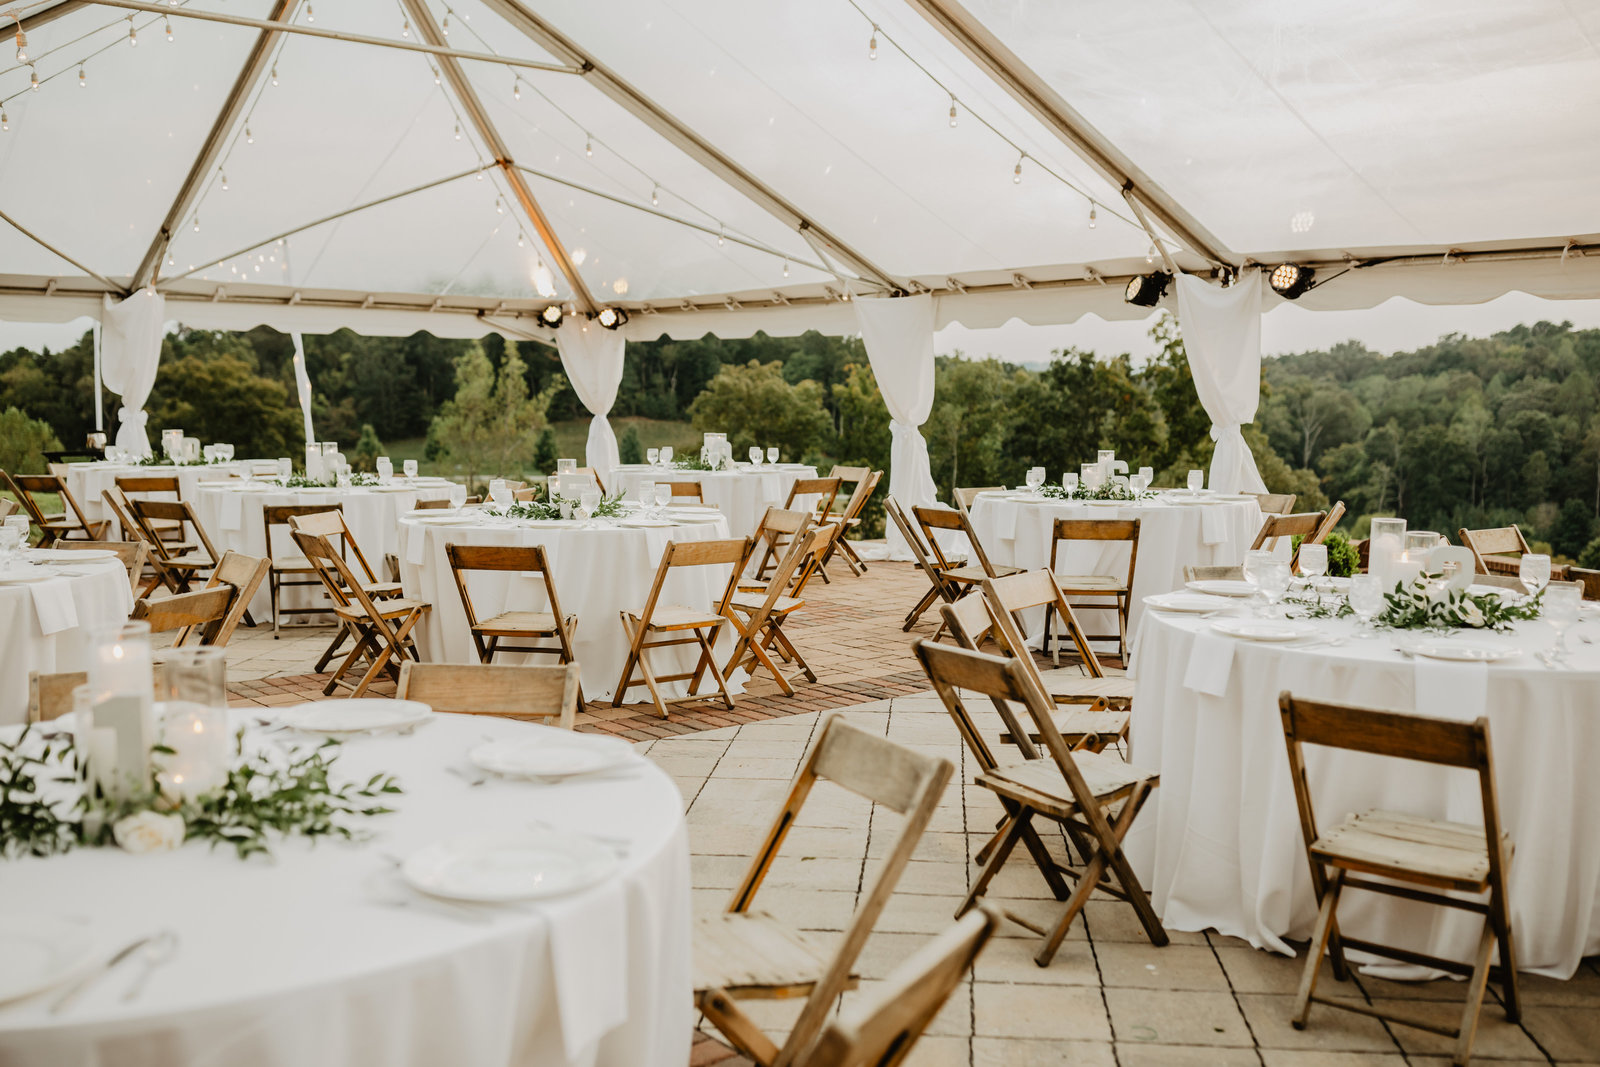 White tented reception table setup in simple green accents.